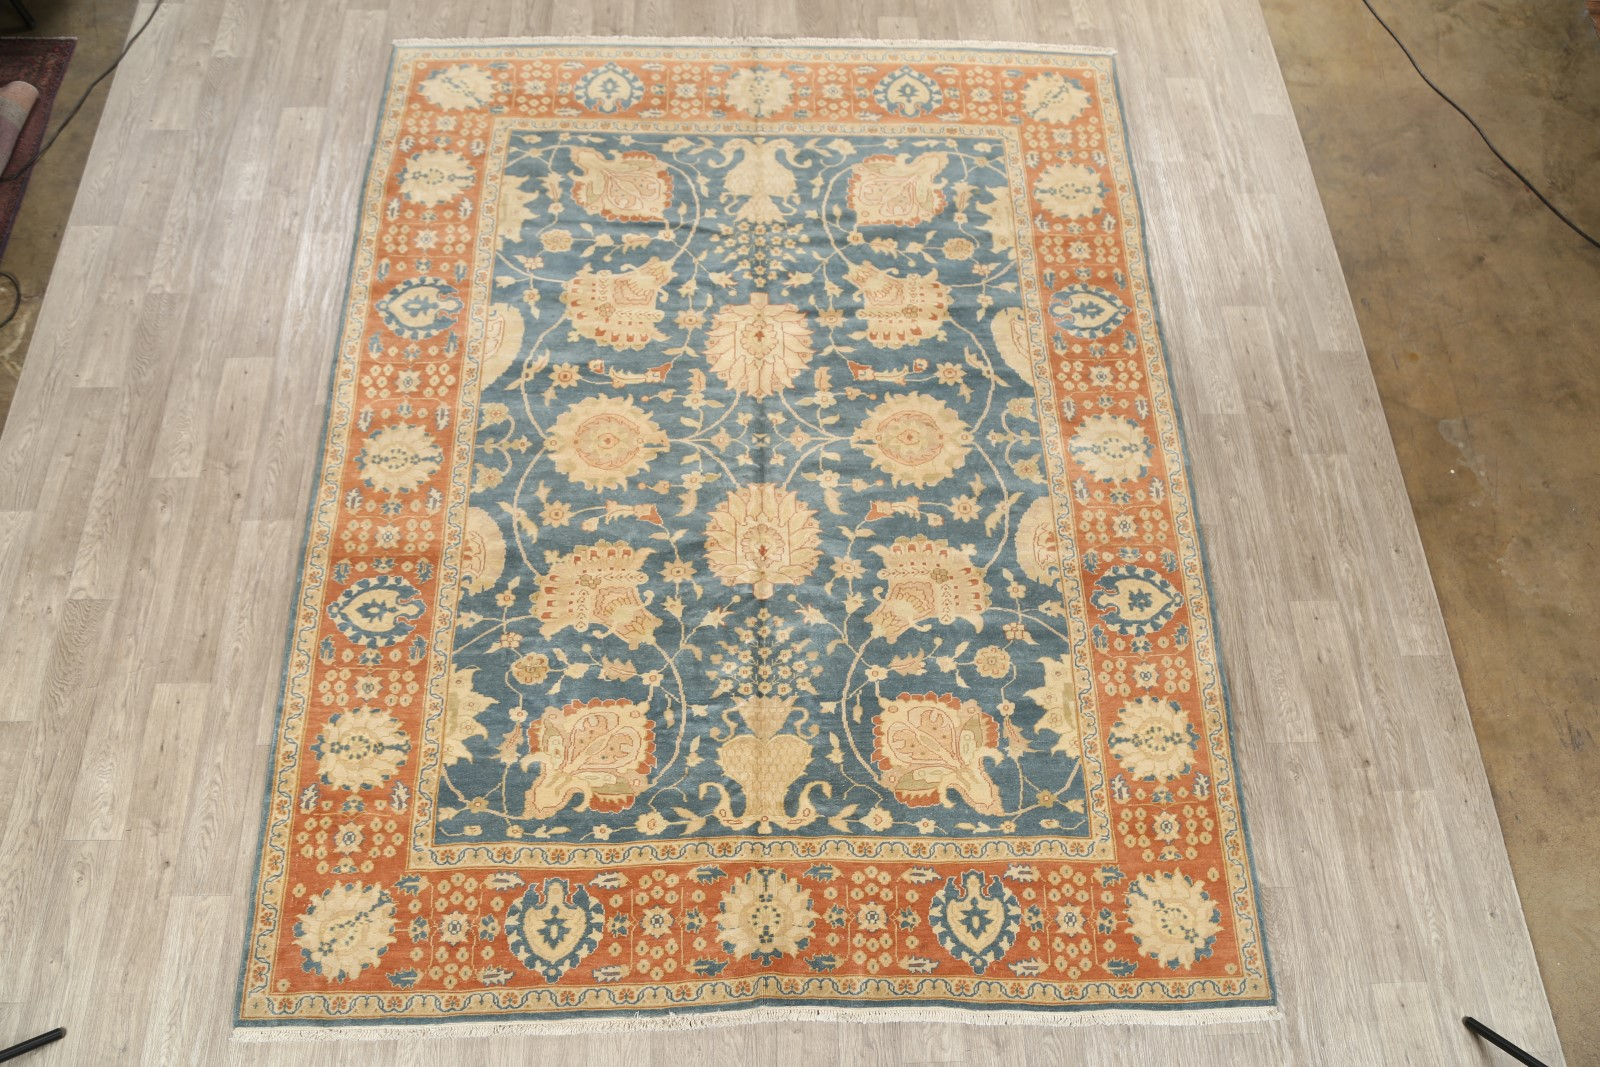 Grand All Over Floral Vegetable Dye 8x10 Teal Blue Wool